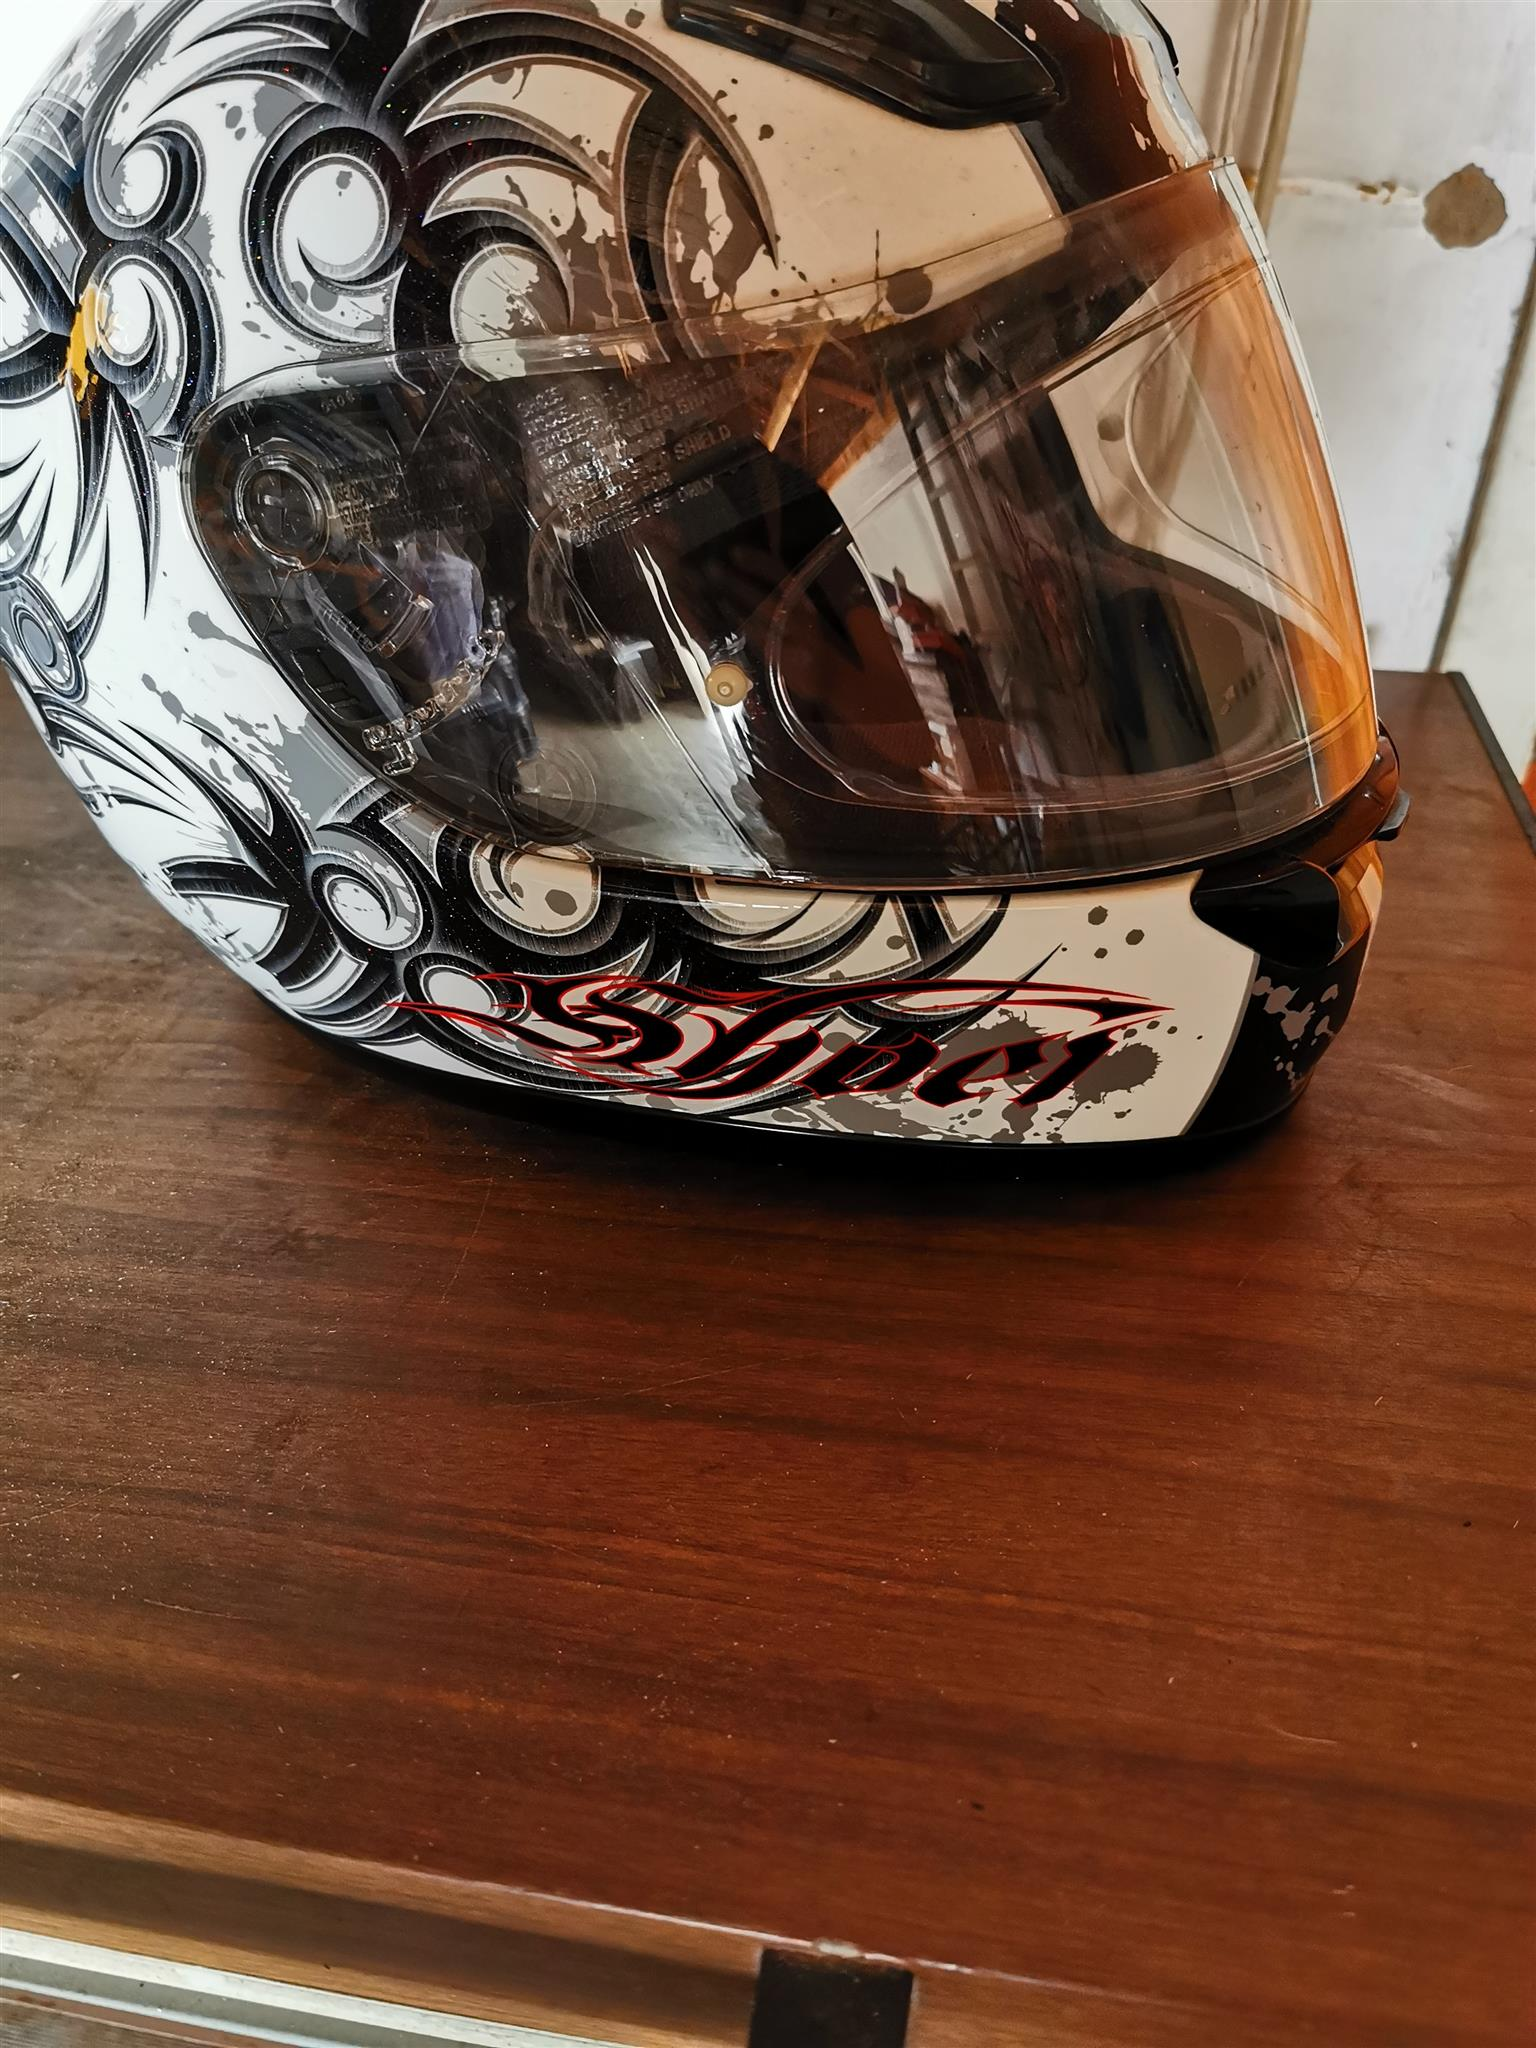 Shoei limited edition helmet for sale